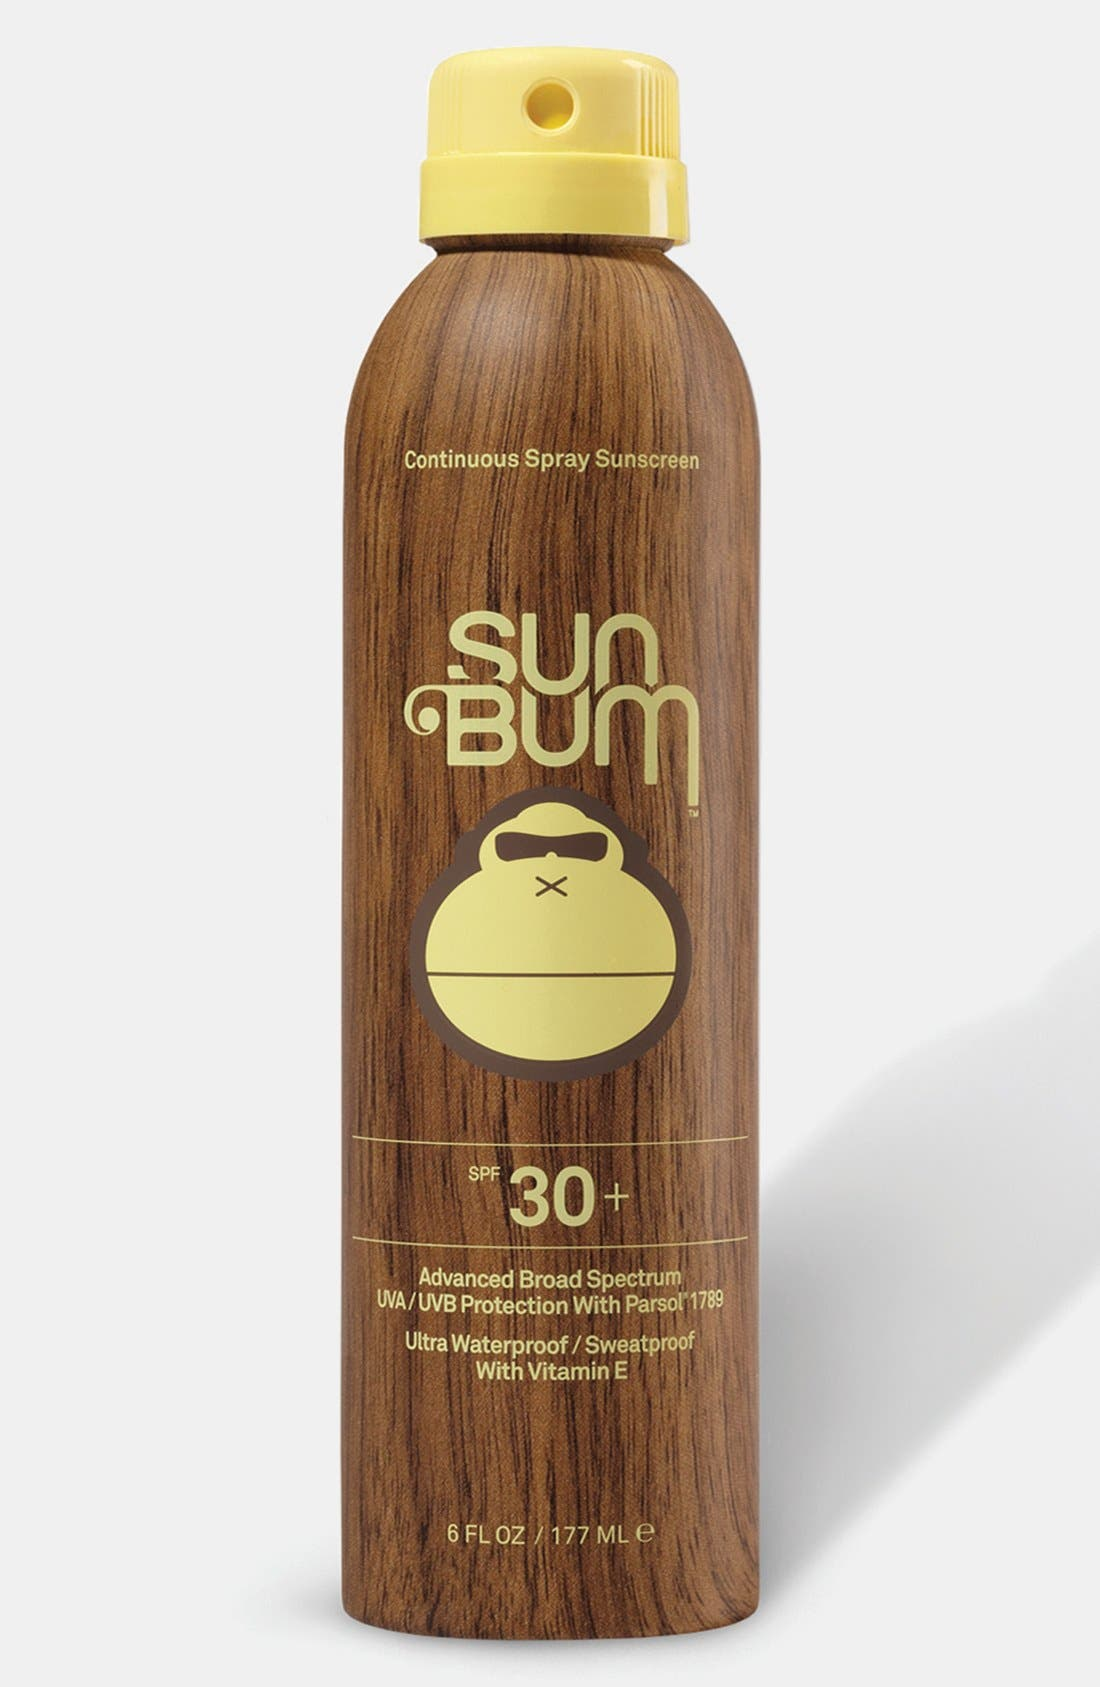 Alternate Image 1 Selected - Sun Bum SPF 30 Sunscreen Spray